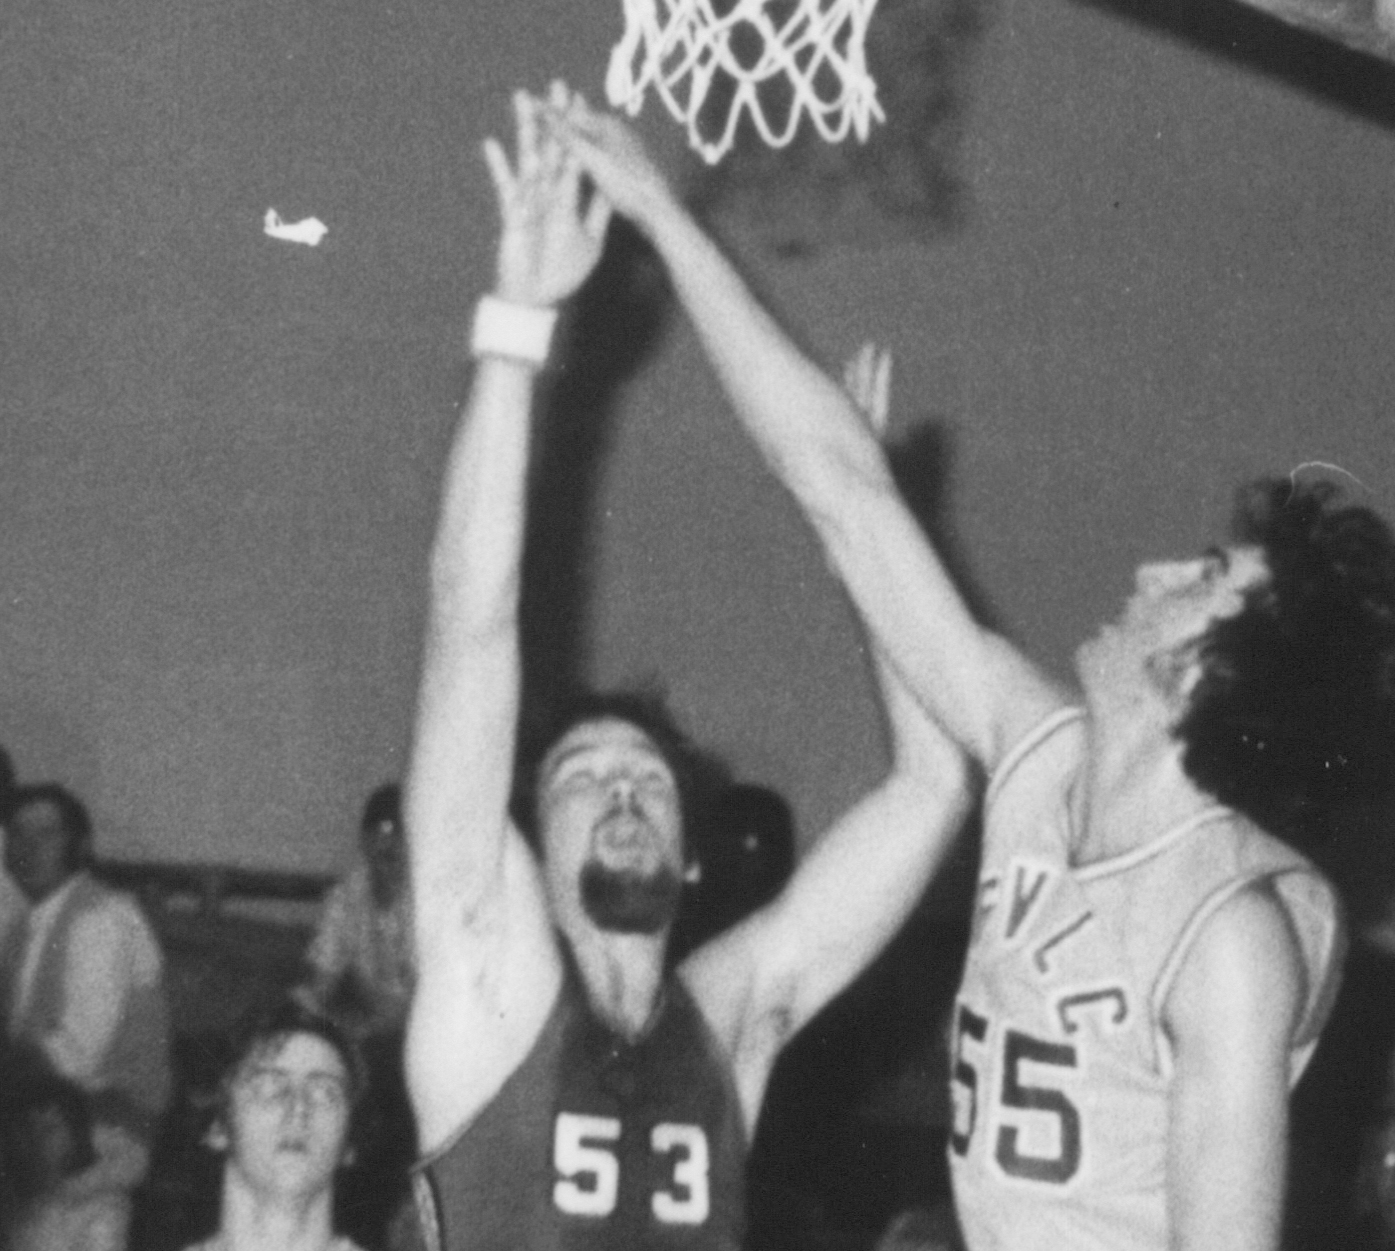 Bethany Lutheran College 1975-76 snapshot of men's basketball player, Mike Miller